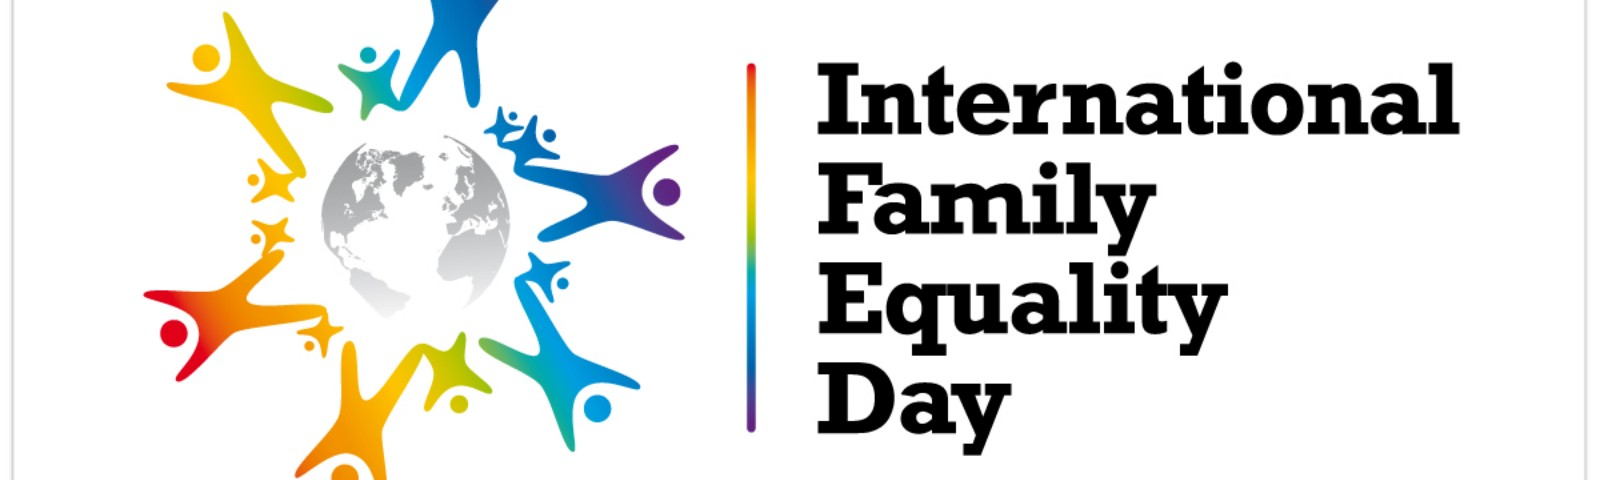 Get Ready for International Family Equality Day 2018!